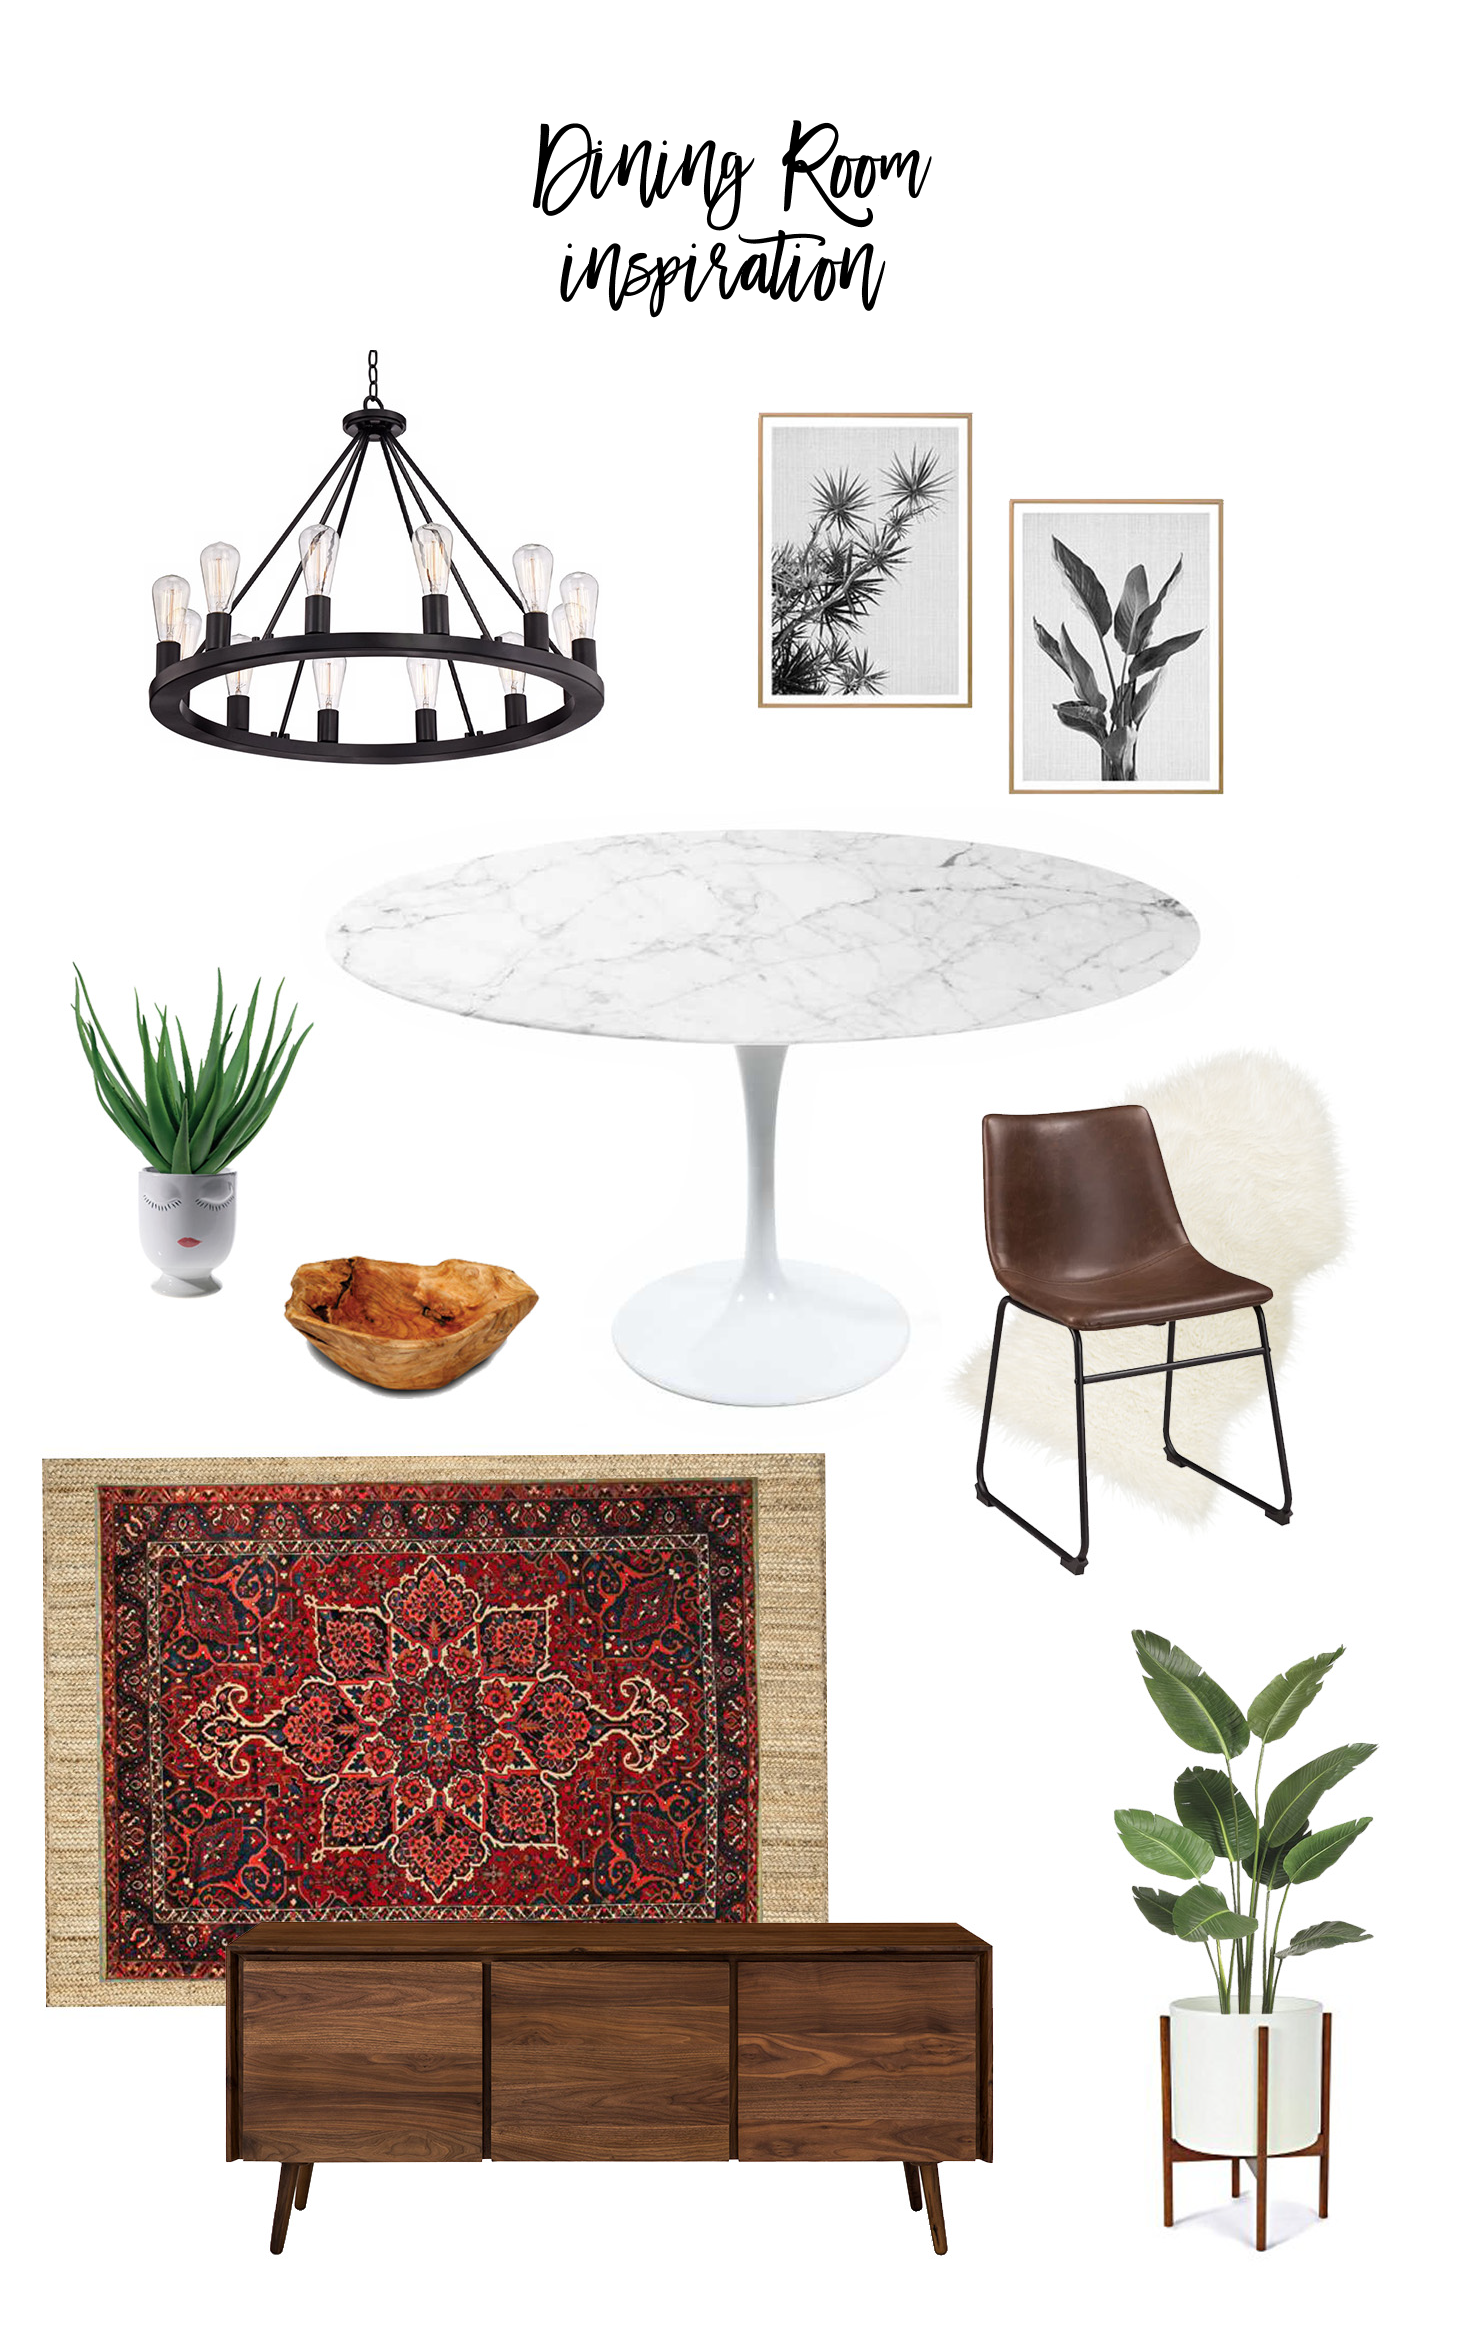 Dining room Inspiration-01.png